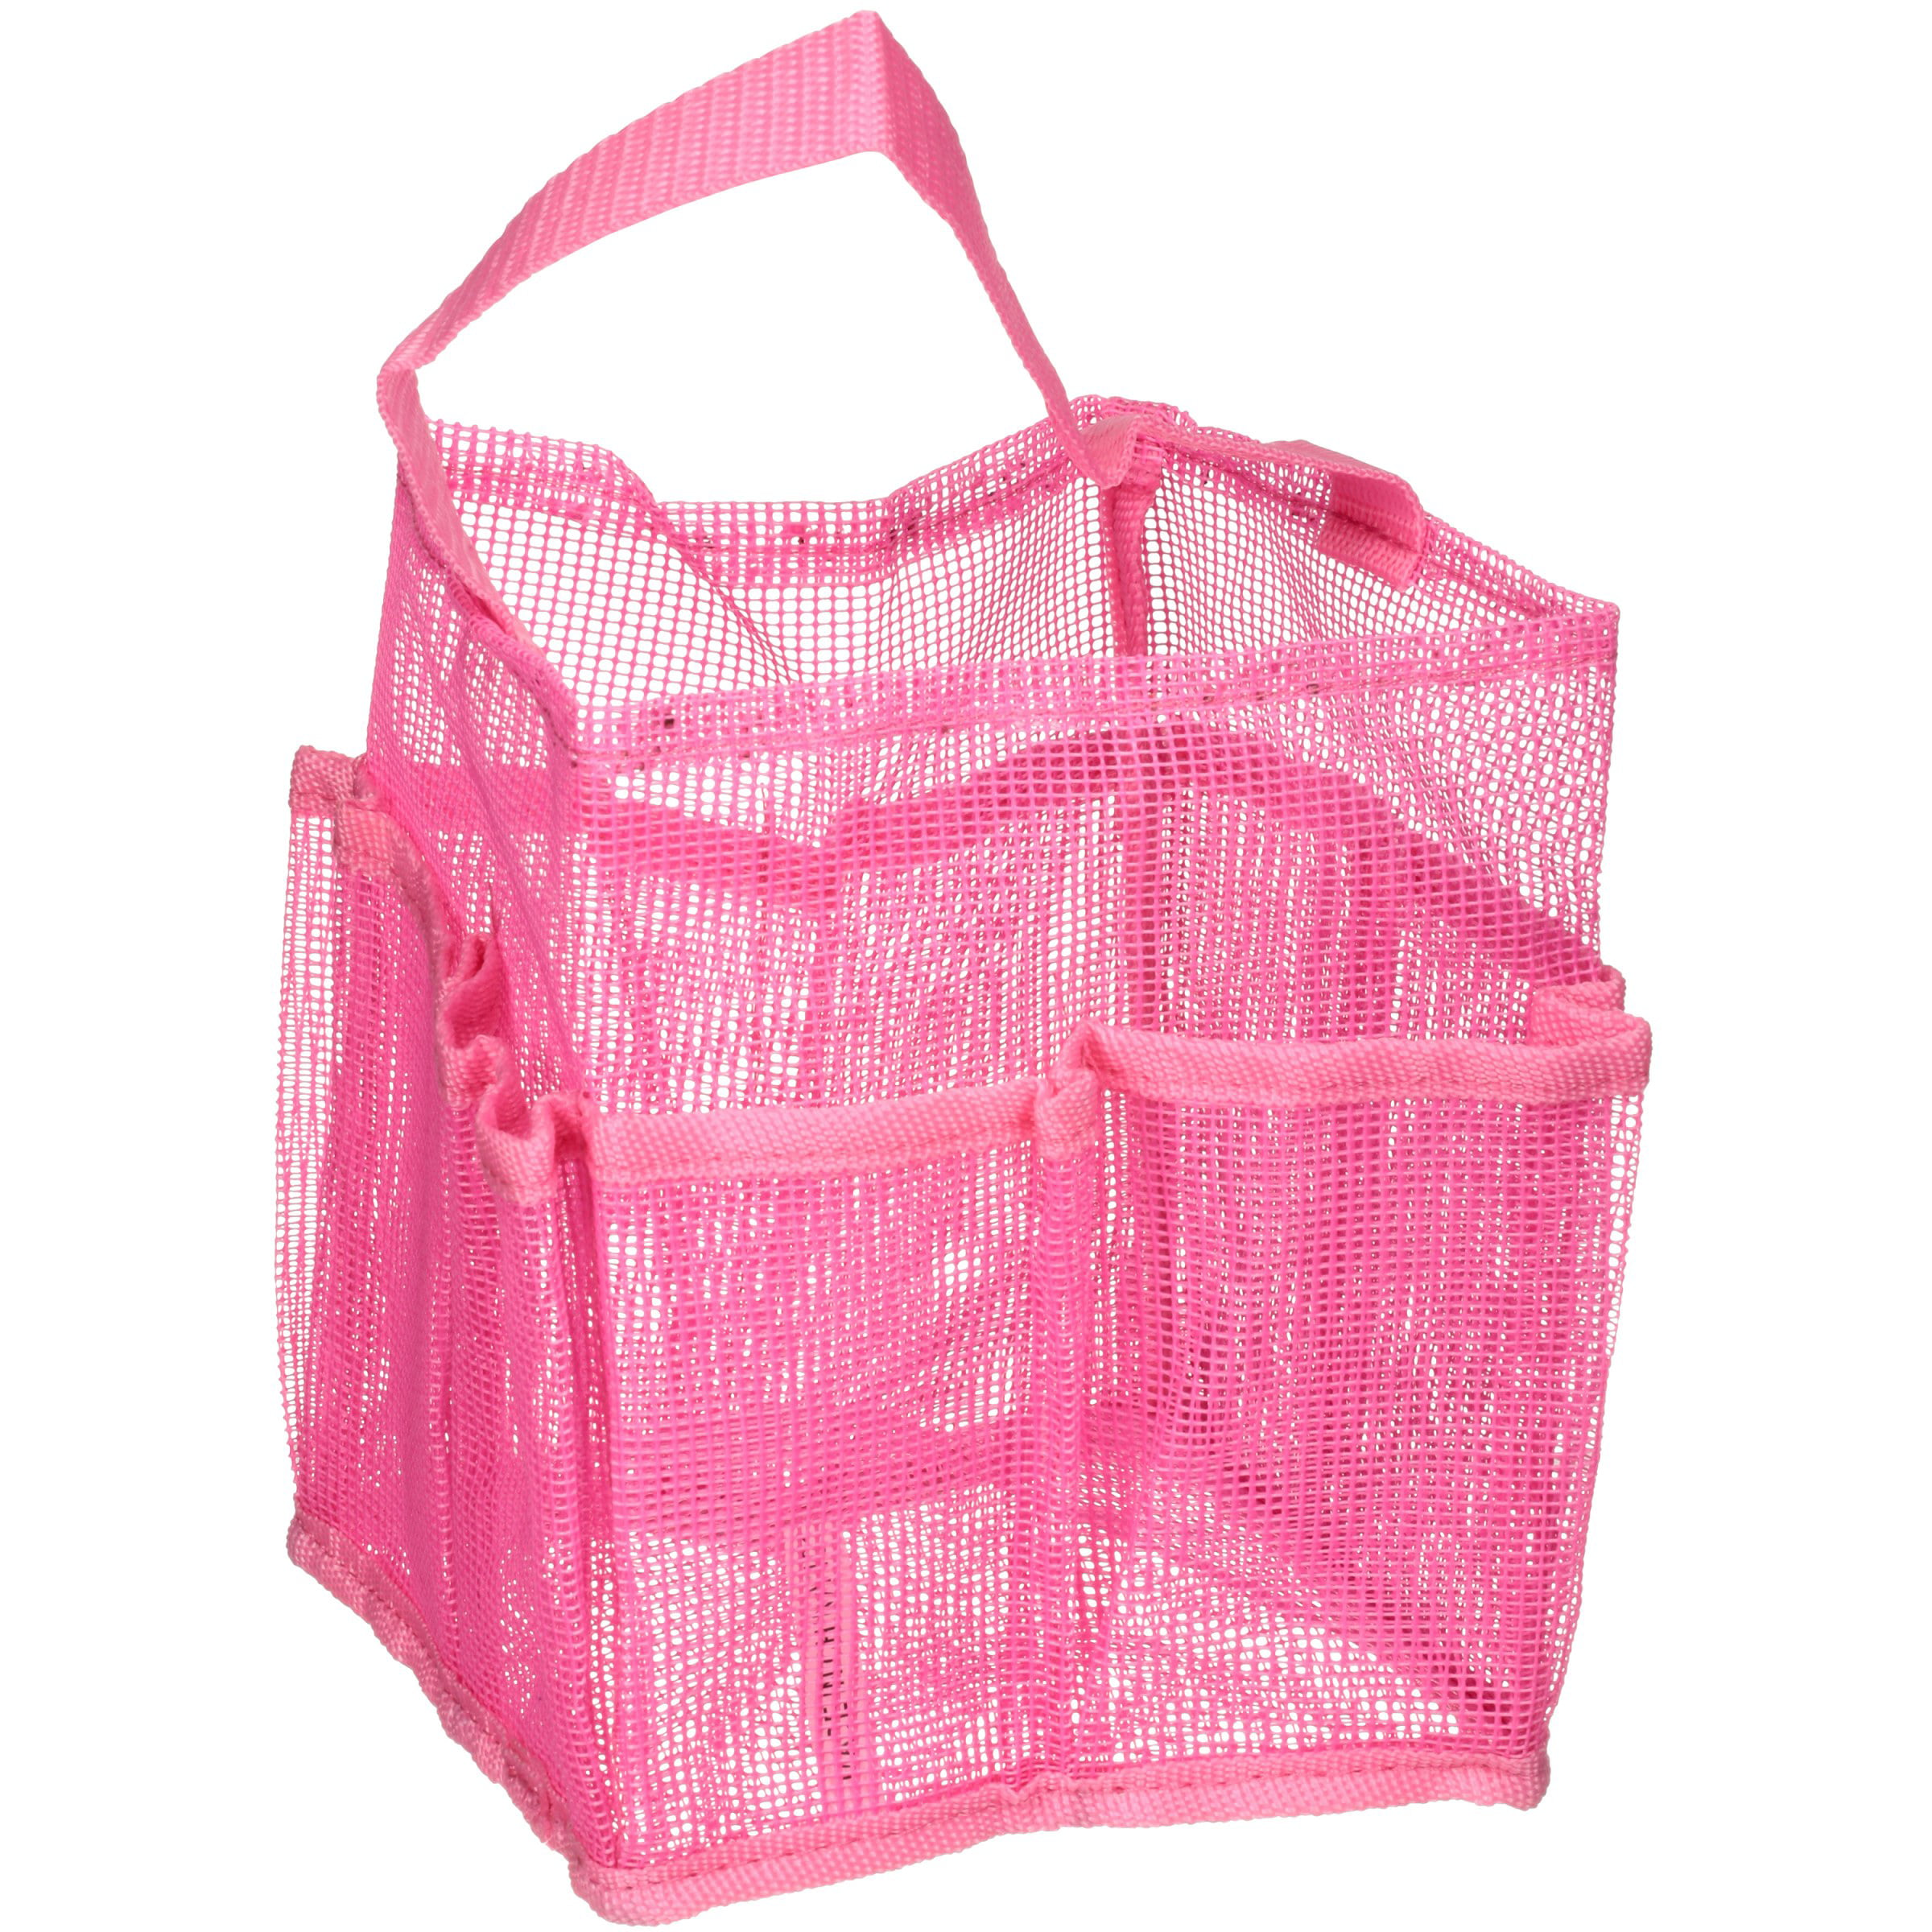 Mainstays Pink Mesh Shower Caddy by Ginsey